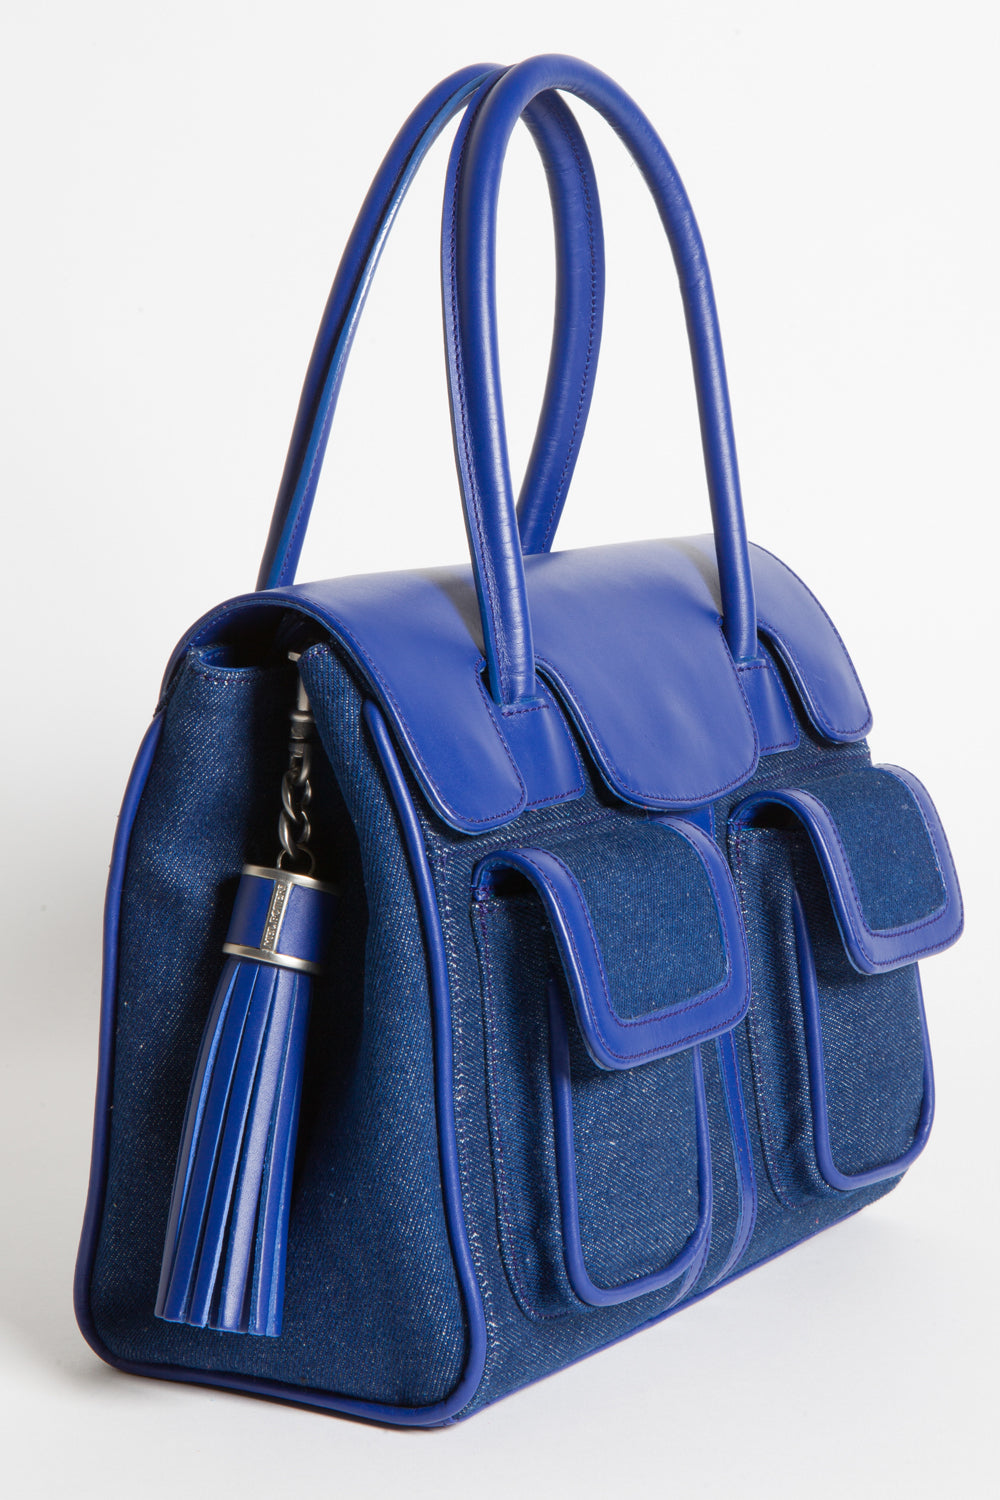 Denim & Cobalt Leather Christy Mini Tote | Side View | Mel Boteri